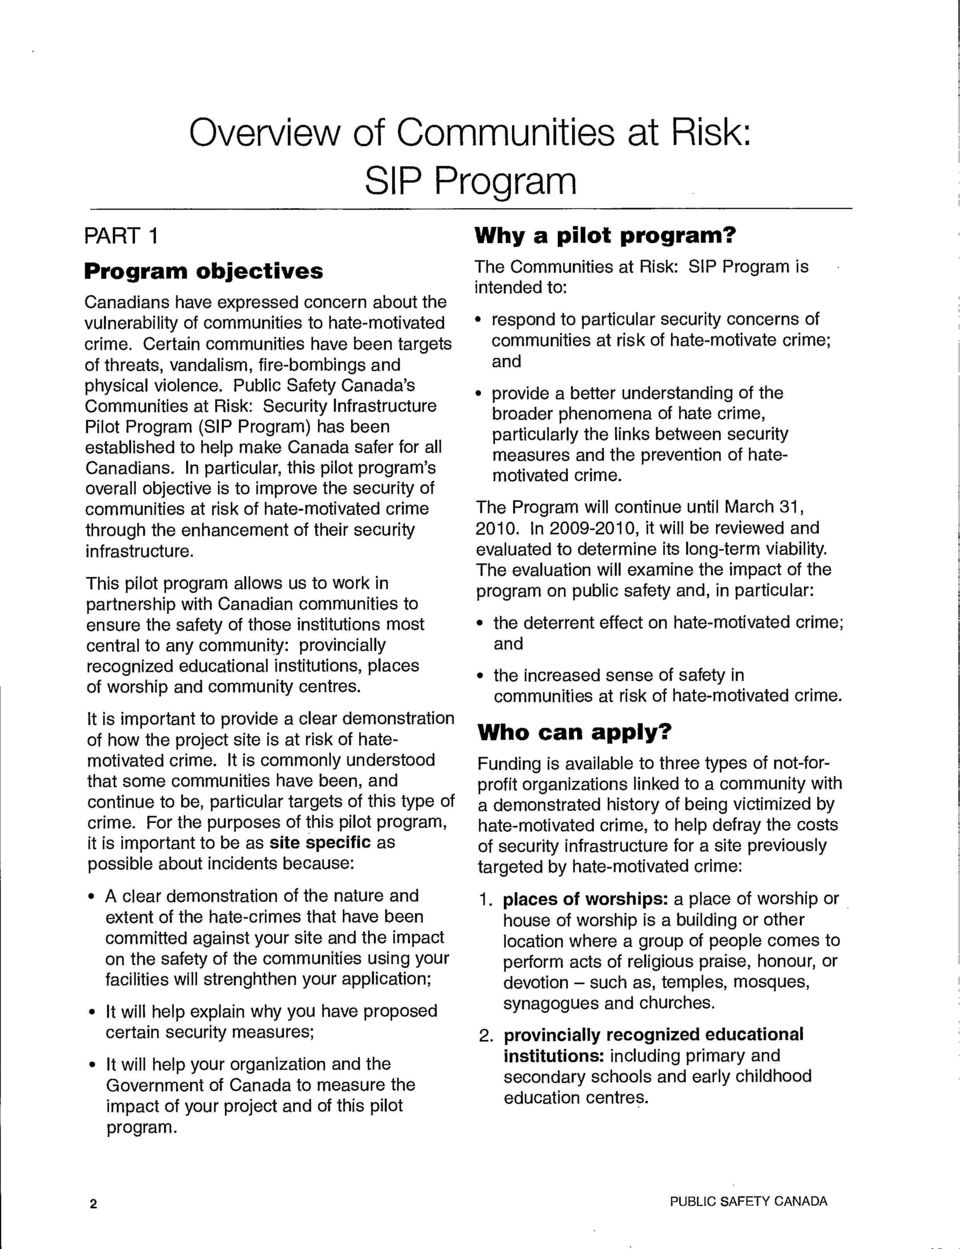 Public Safety Canada's Communities at Risk: Security Infrastructure Pilot Program (SIP Program) has been established to help make Canada safer for all Canadians.